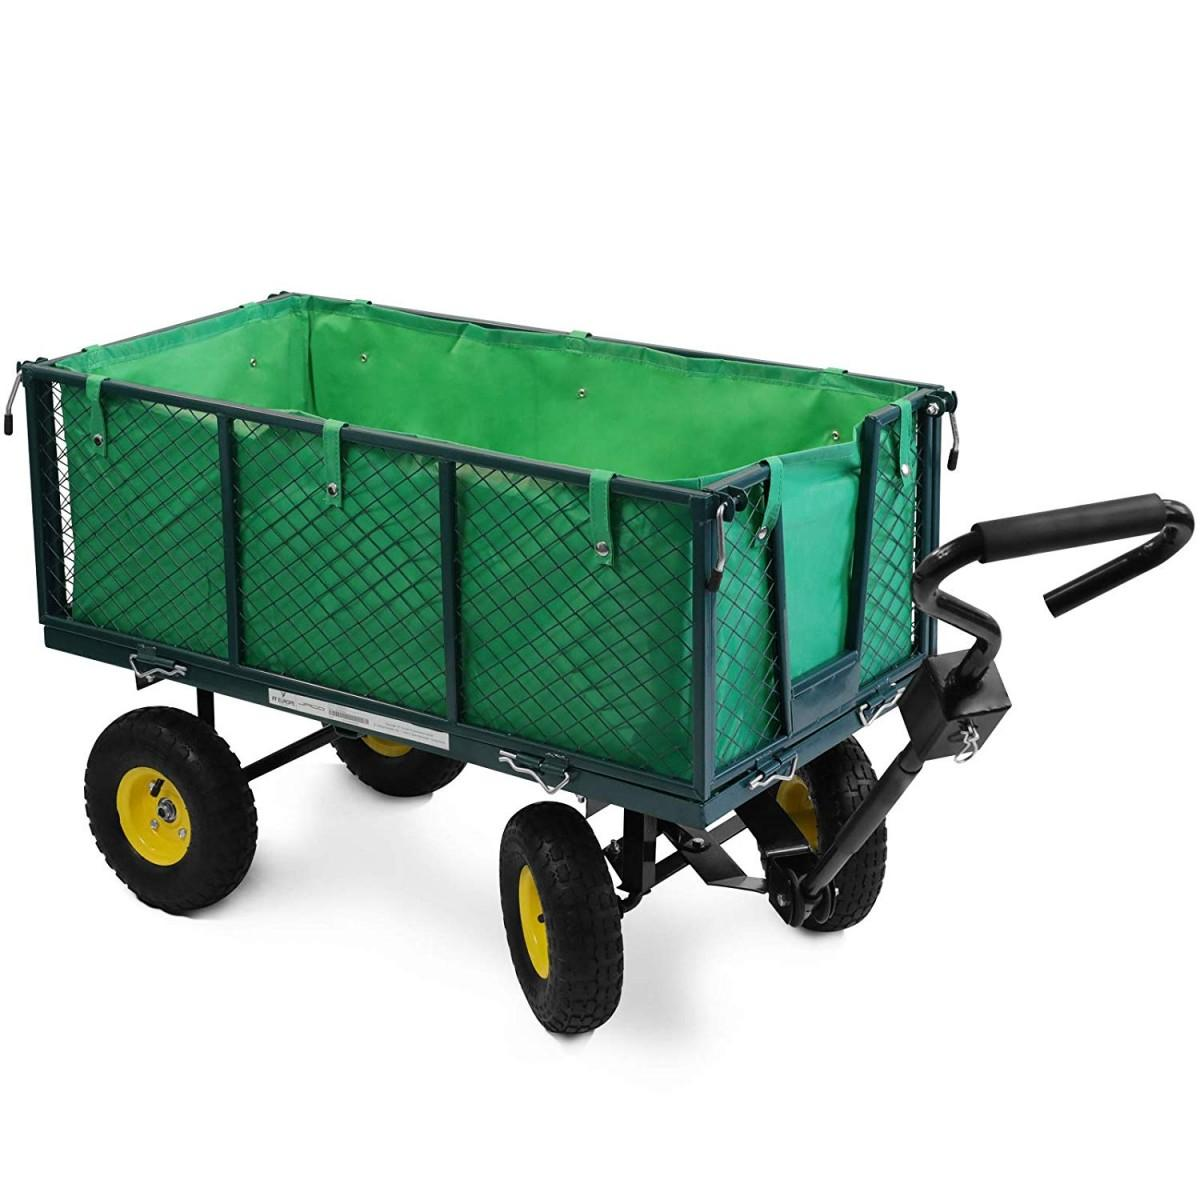 Handcart Maximum Load 550 kg Choice of Colours Folding Side Walls Removable Tarpaulin Pneumatic Tyres Garden Trolley Hand Trolley